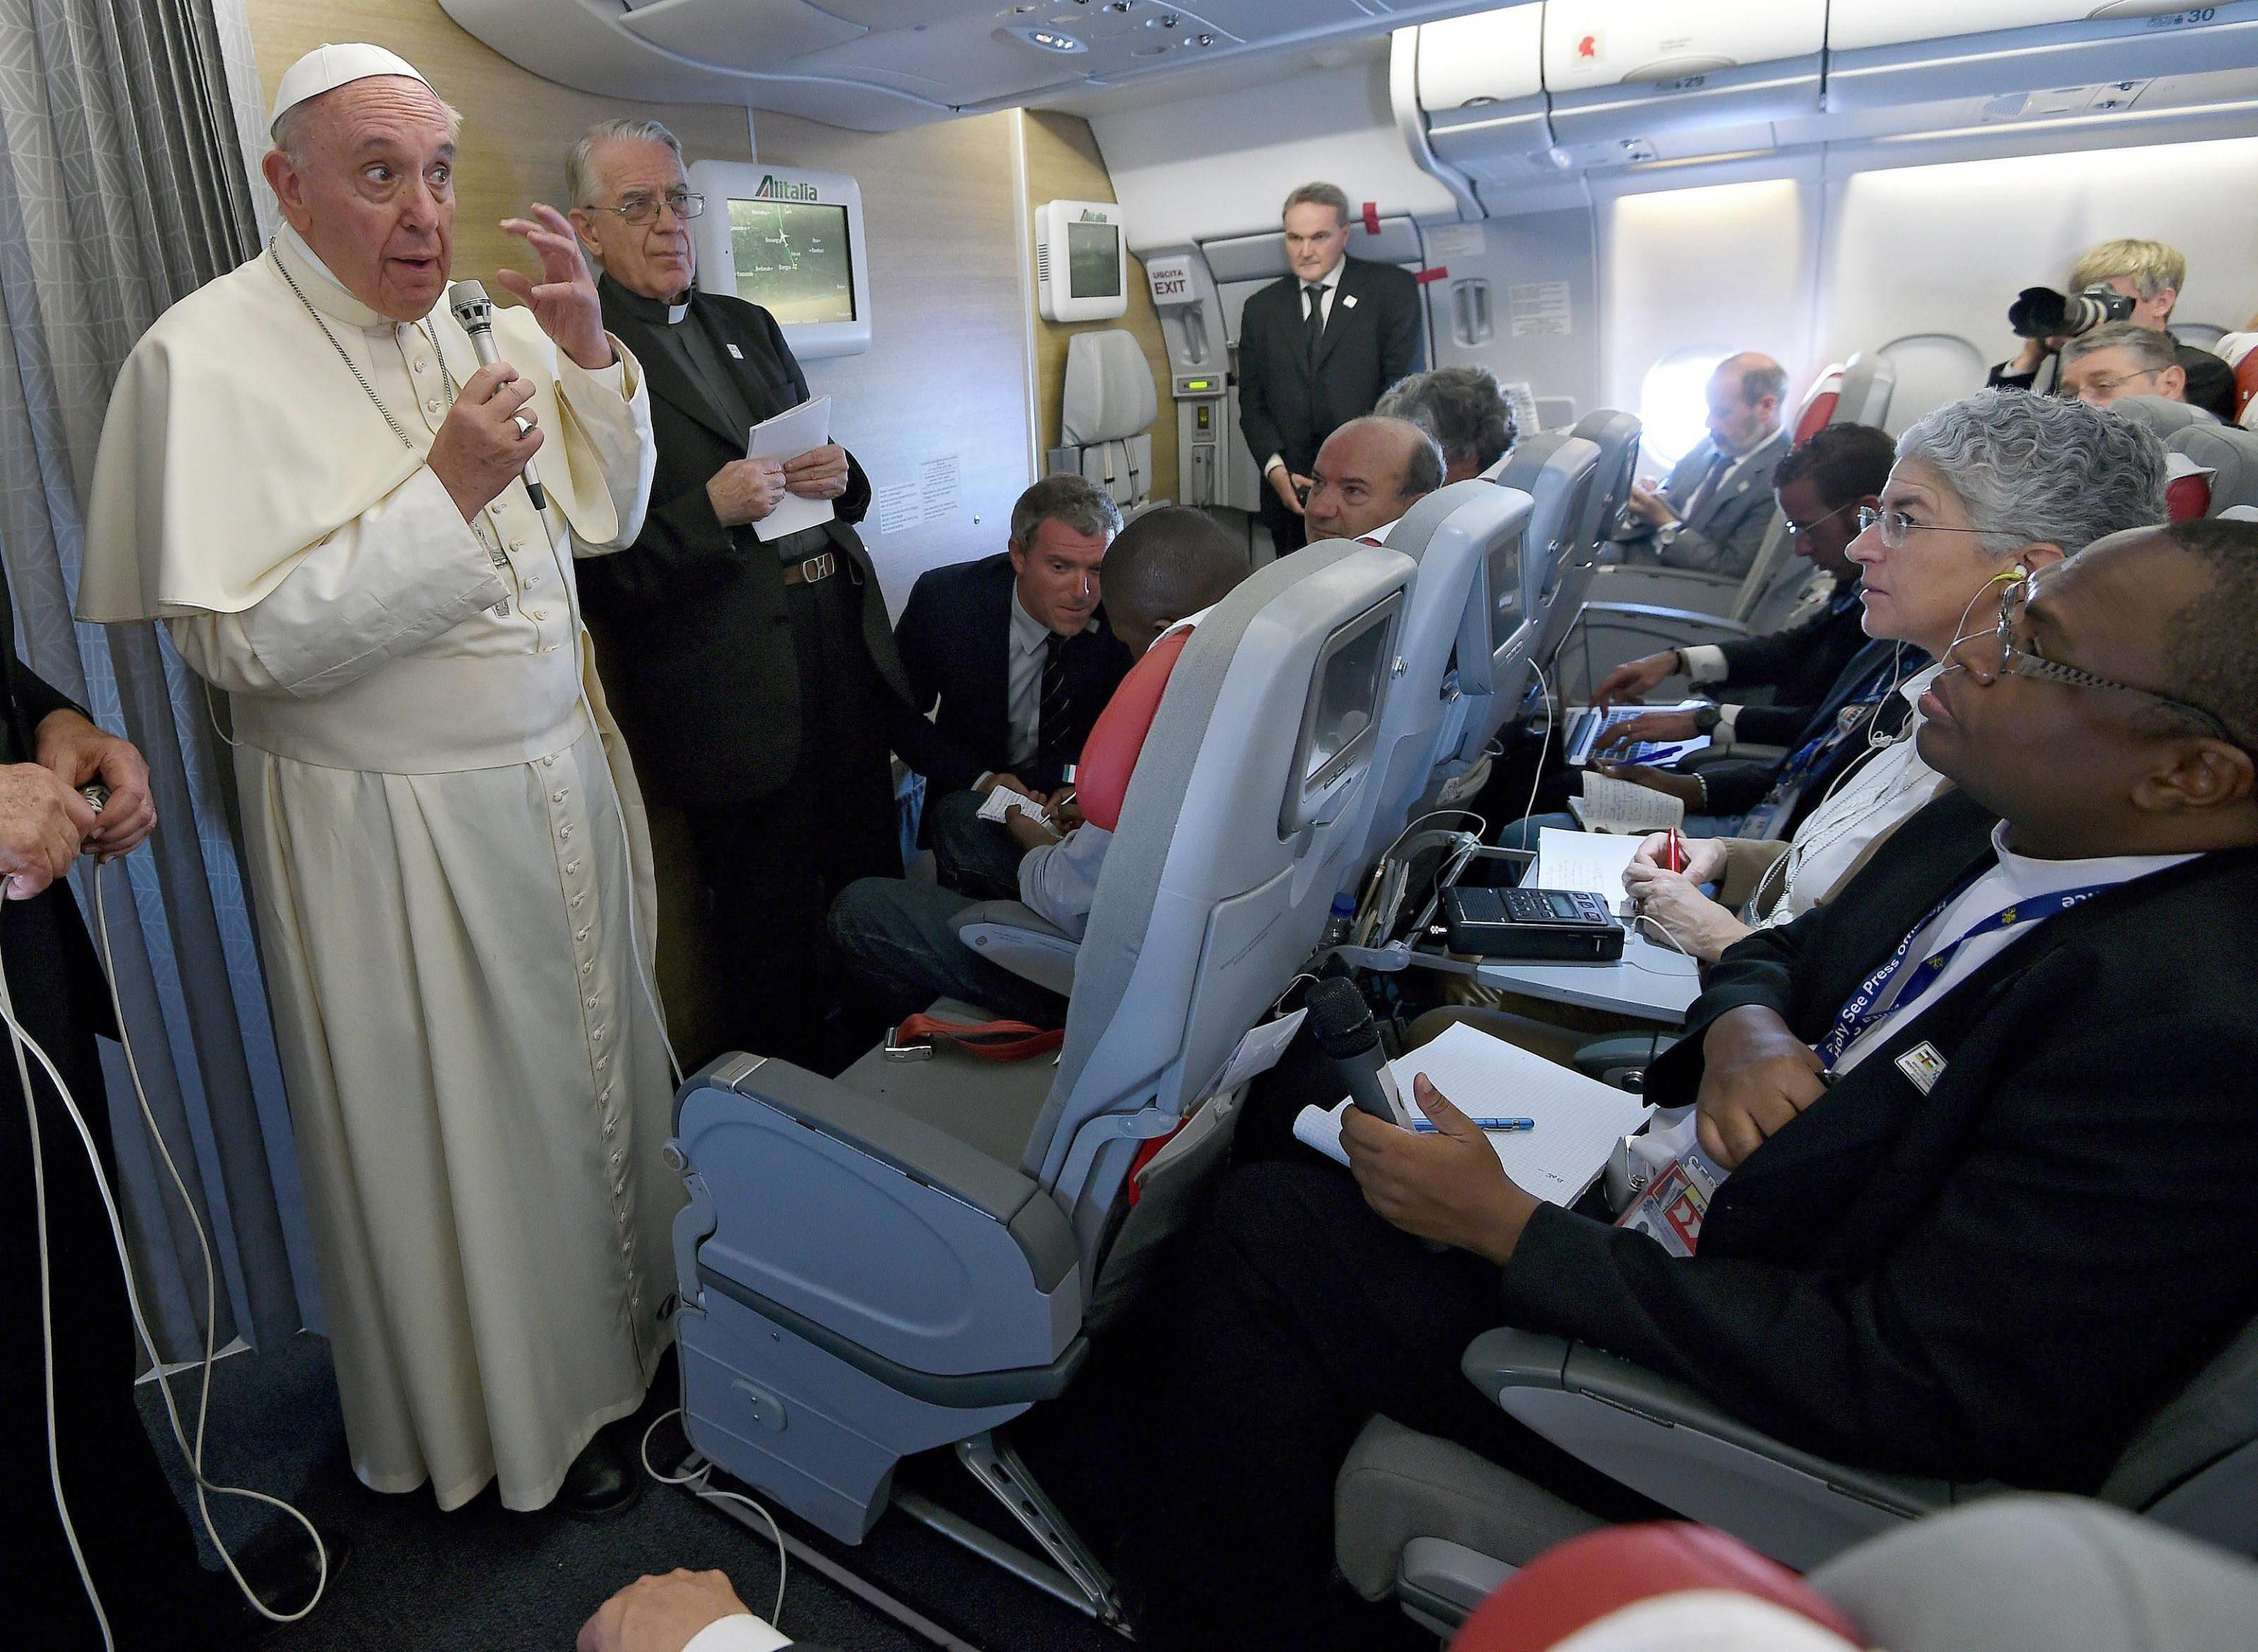 Pope Francis' homeflight from Bangui to Rome